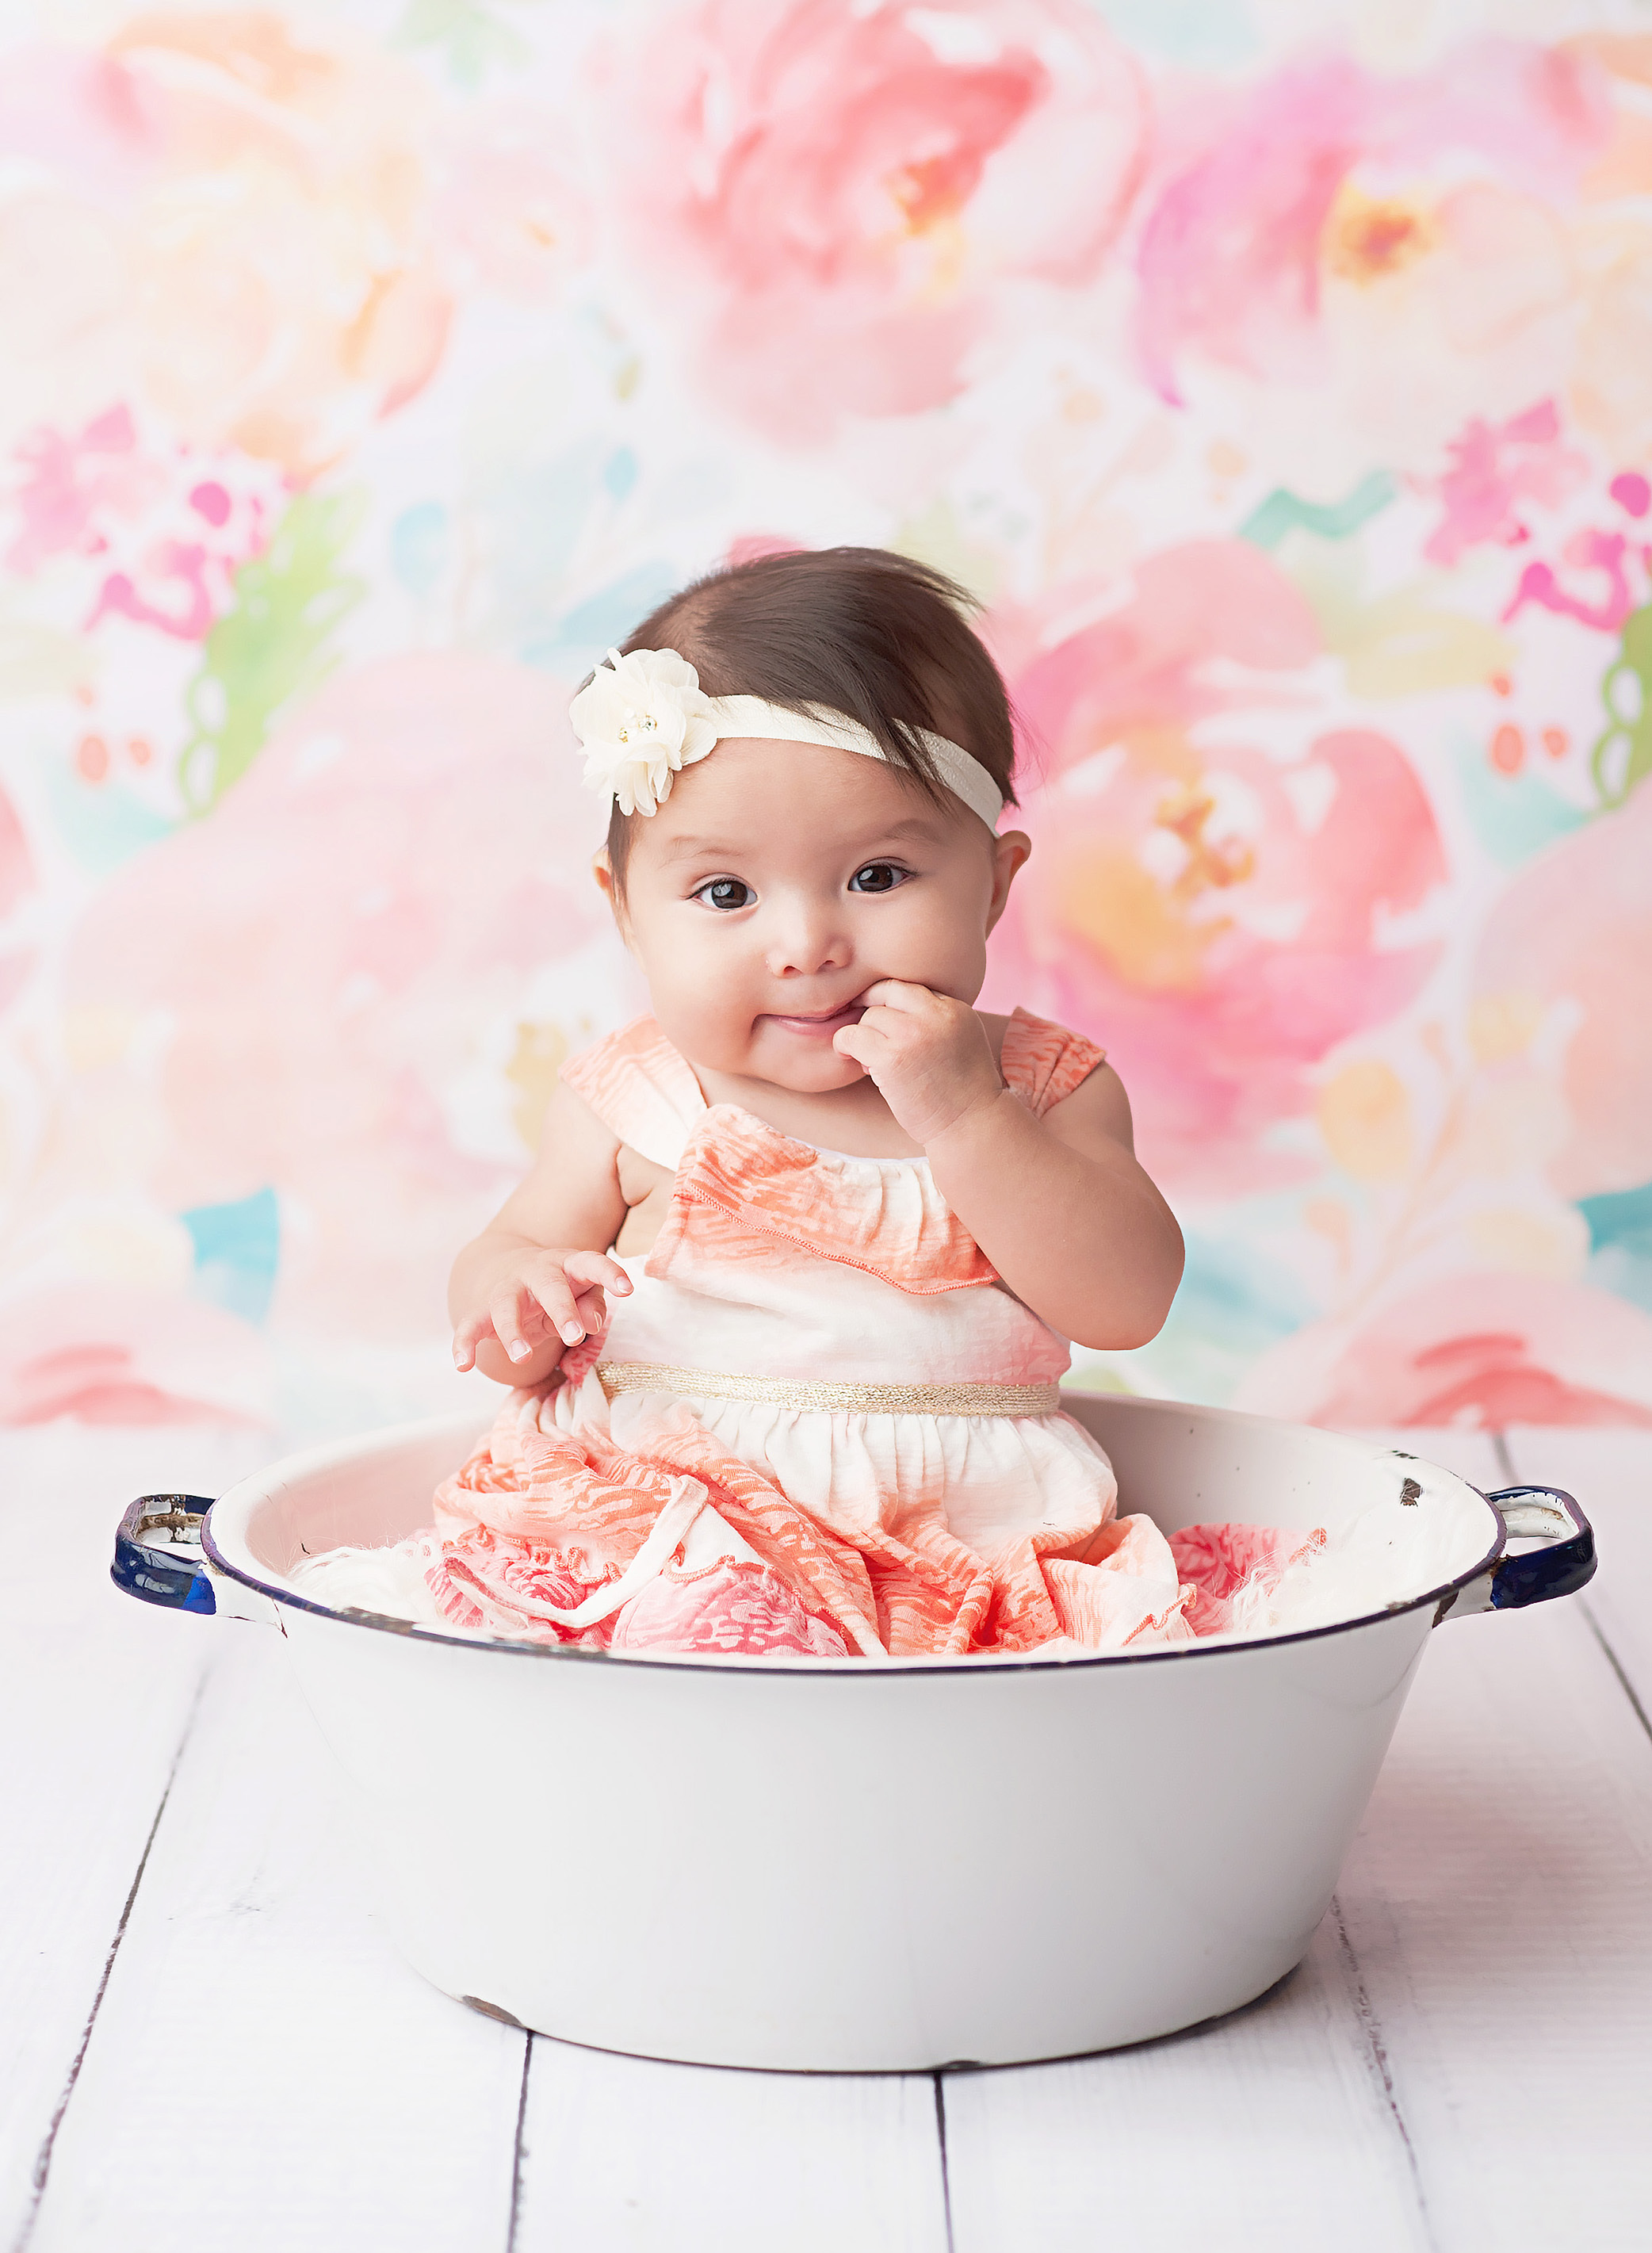 6 month old girl in white bowl